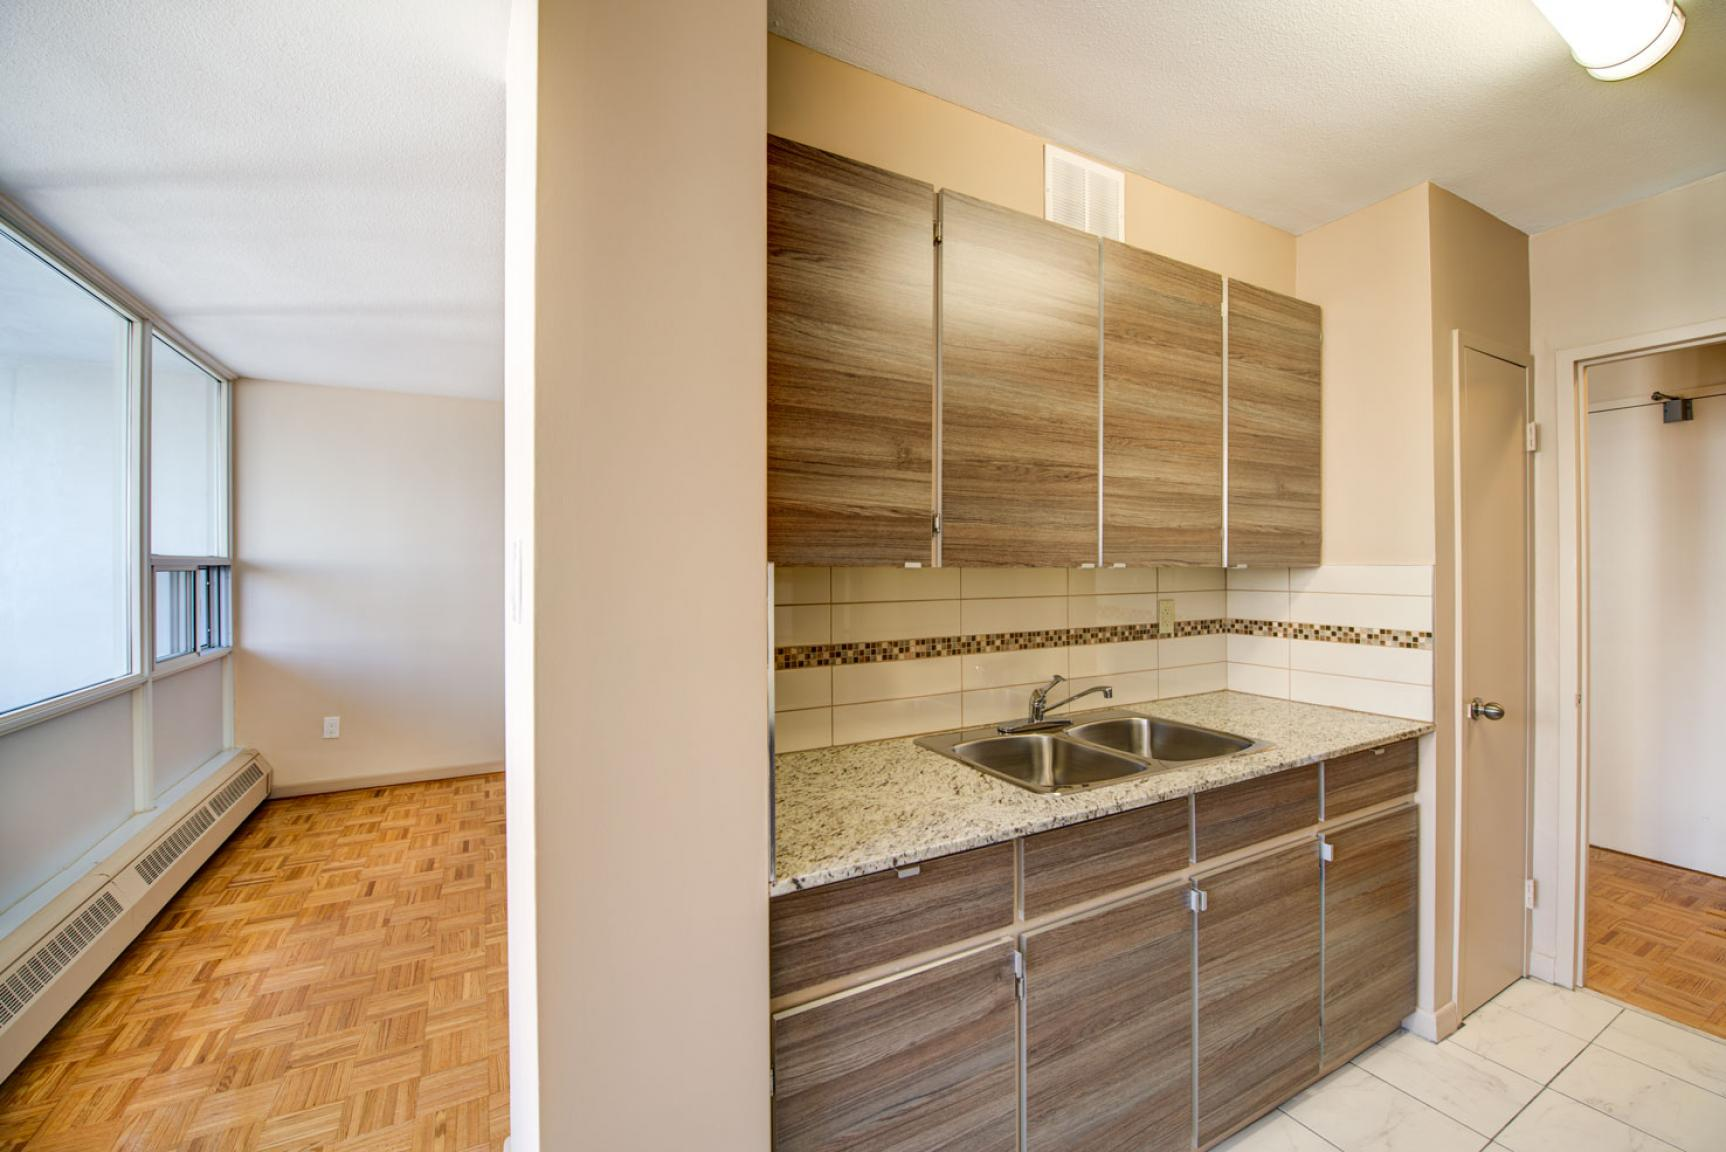 1 bedroom Apartments for rent in Toronto at Holly Tower - Photo 13 - RentersPages – L399824